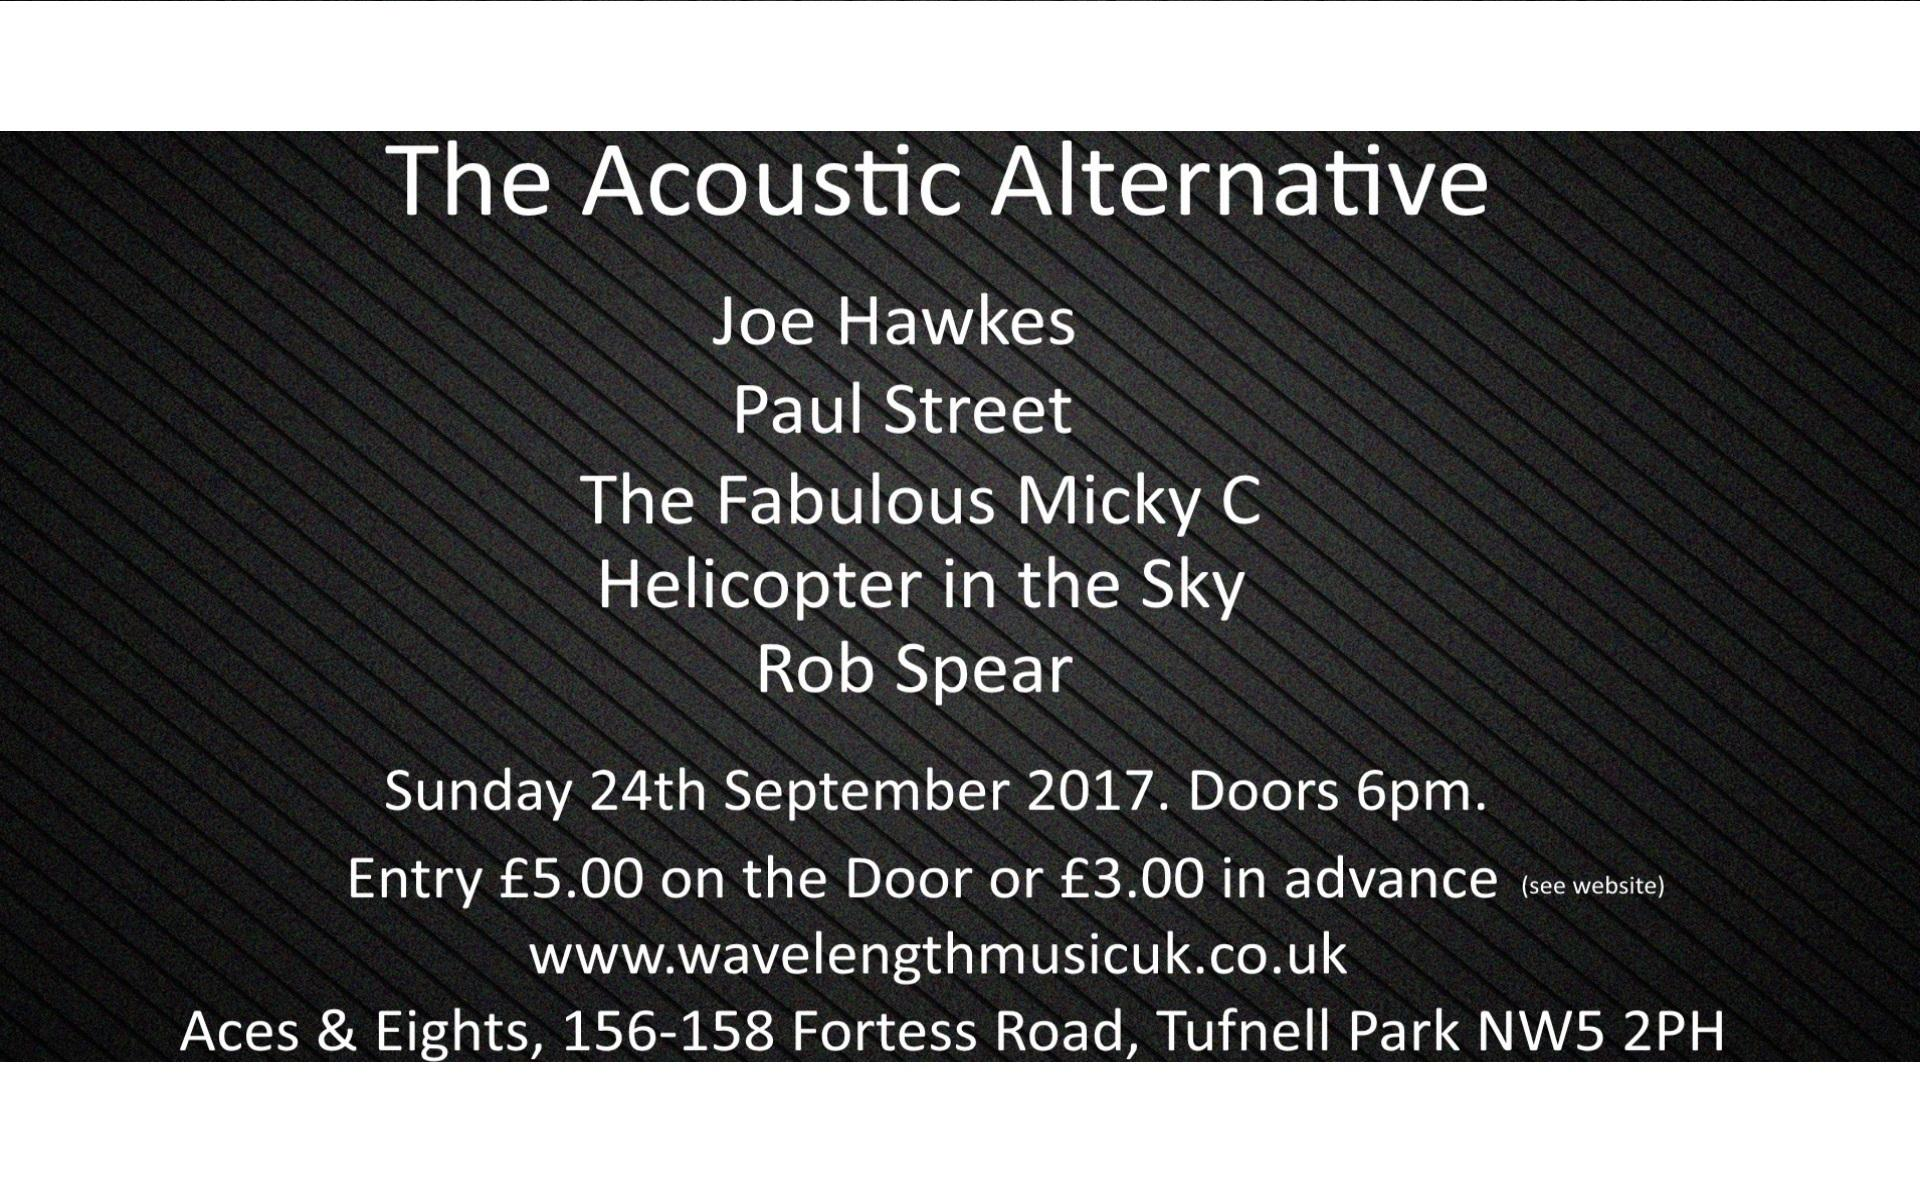 The Acoustic Alternative. Acoustic Performances, from Alternative Artists.